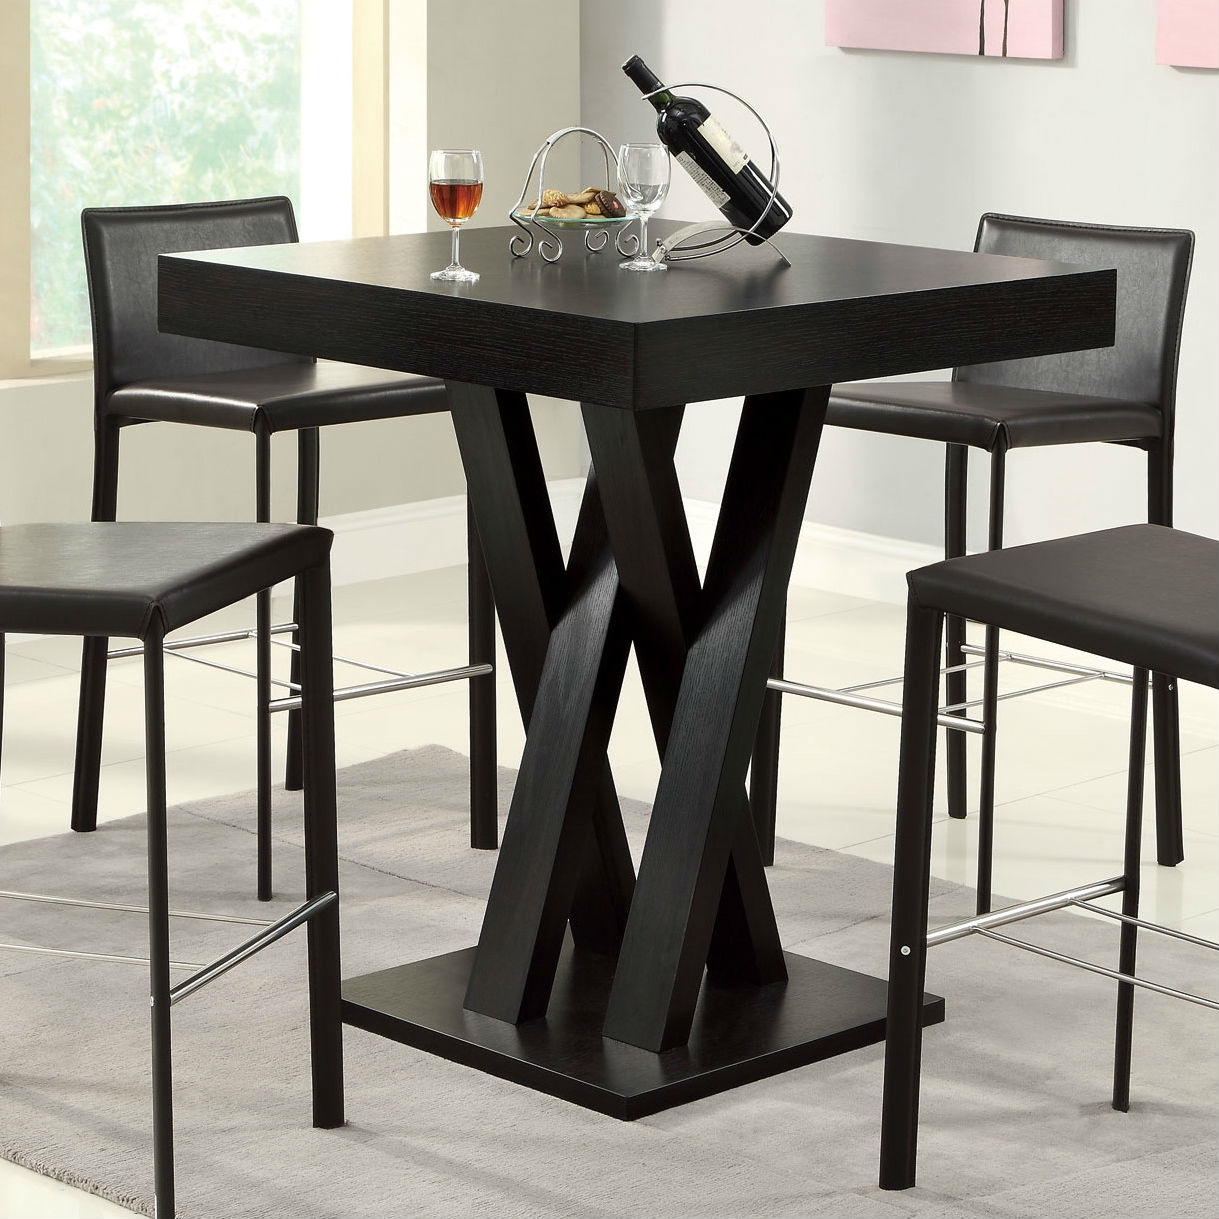 modern 40 inch high square dining table in dark cappuccino finish. Black Bedroom Furniture Sets. Home Design Ideas